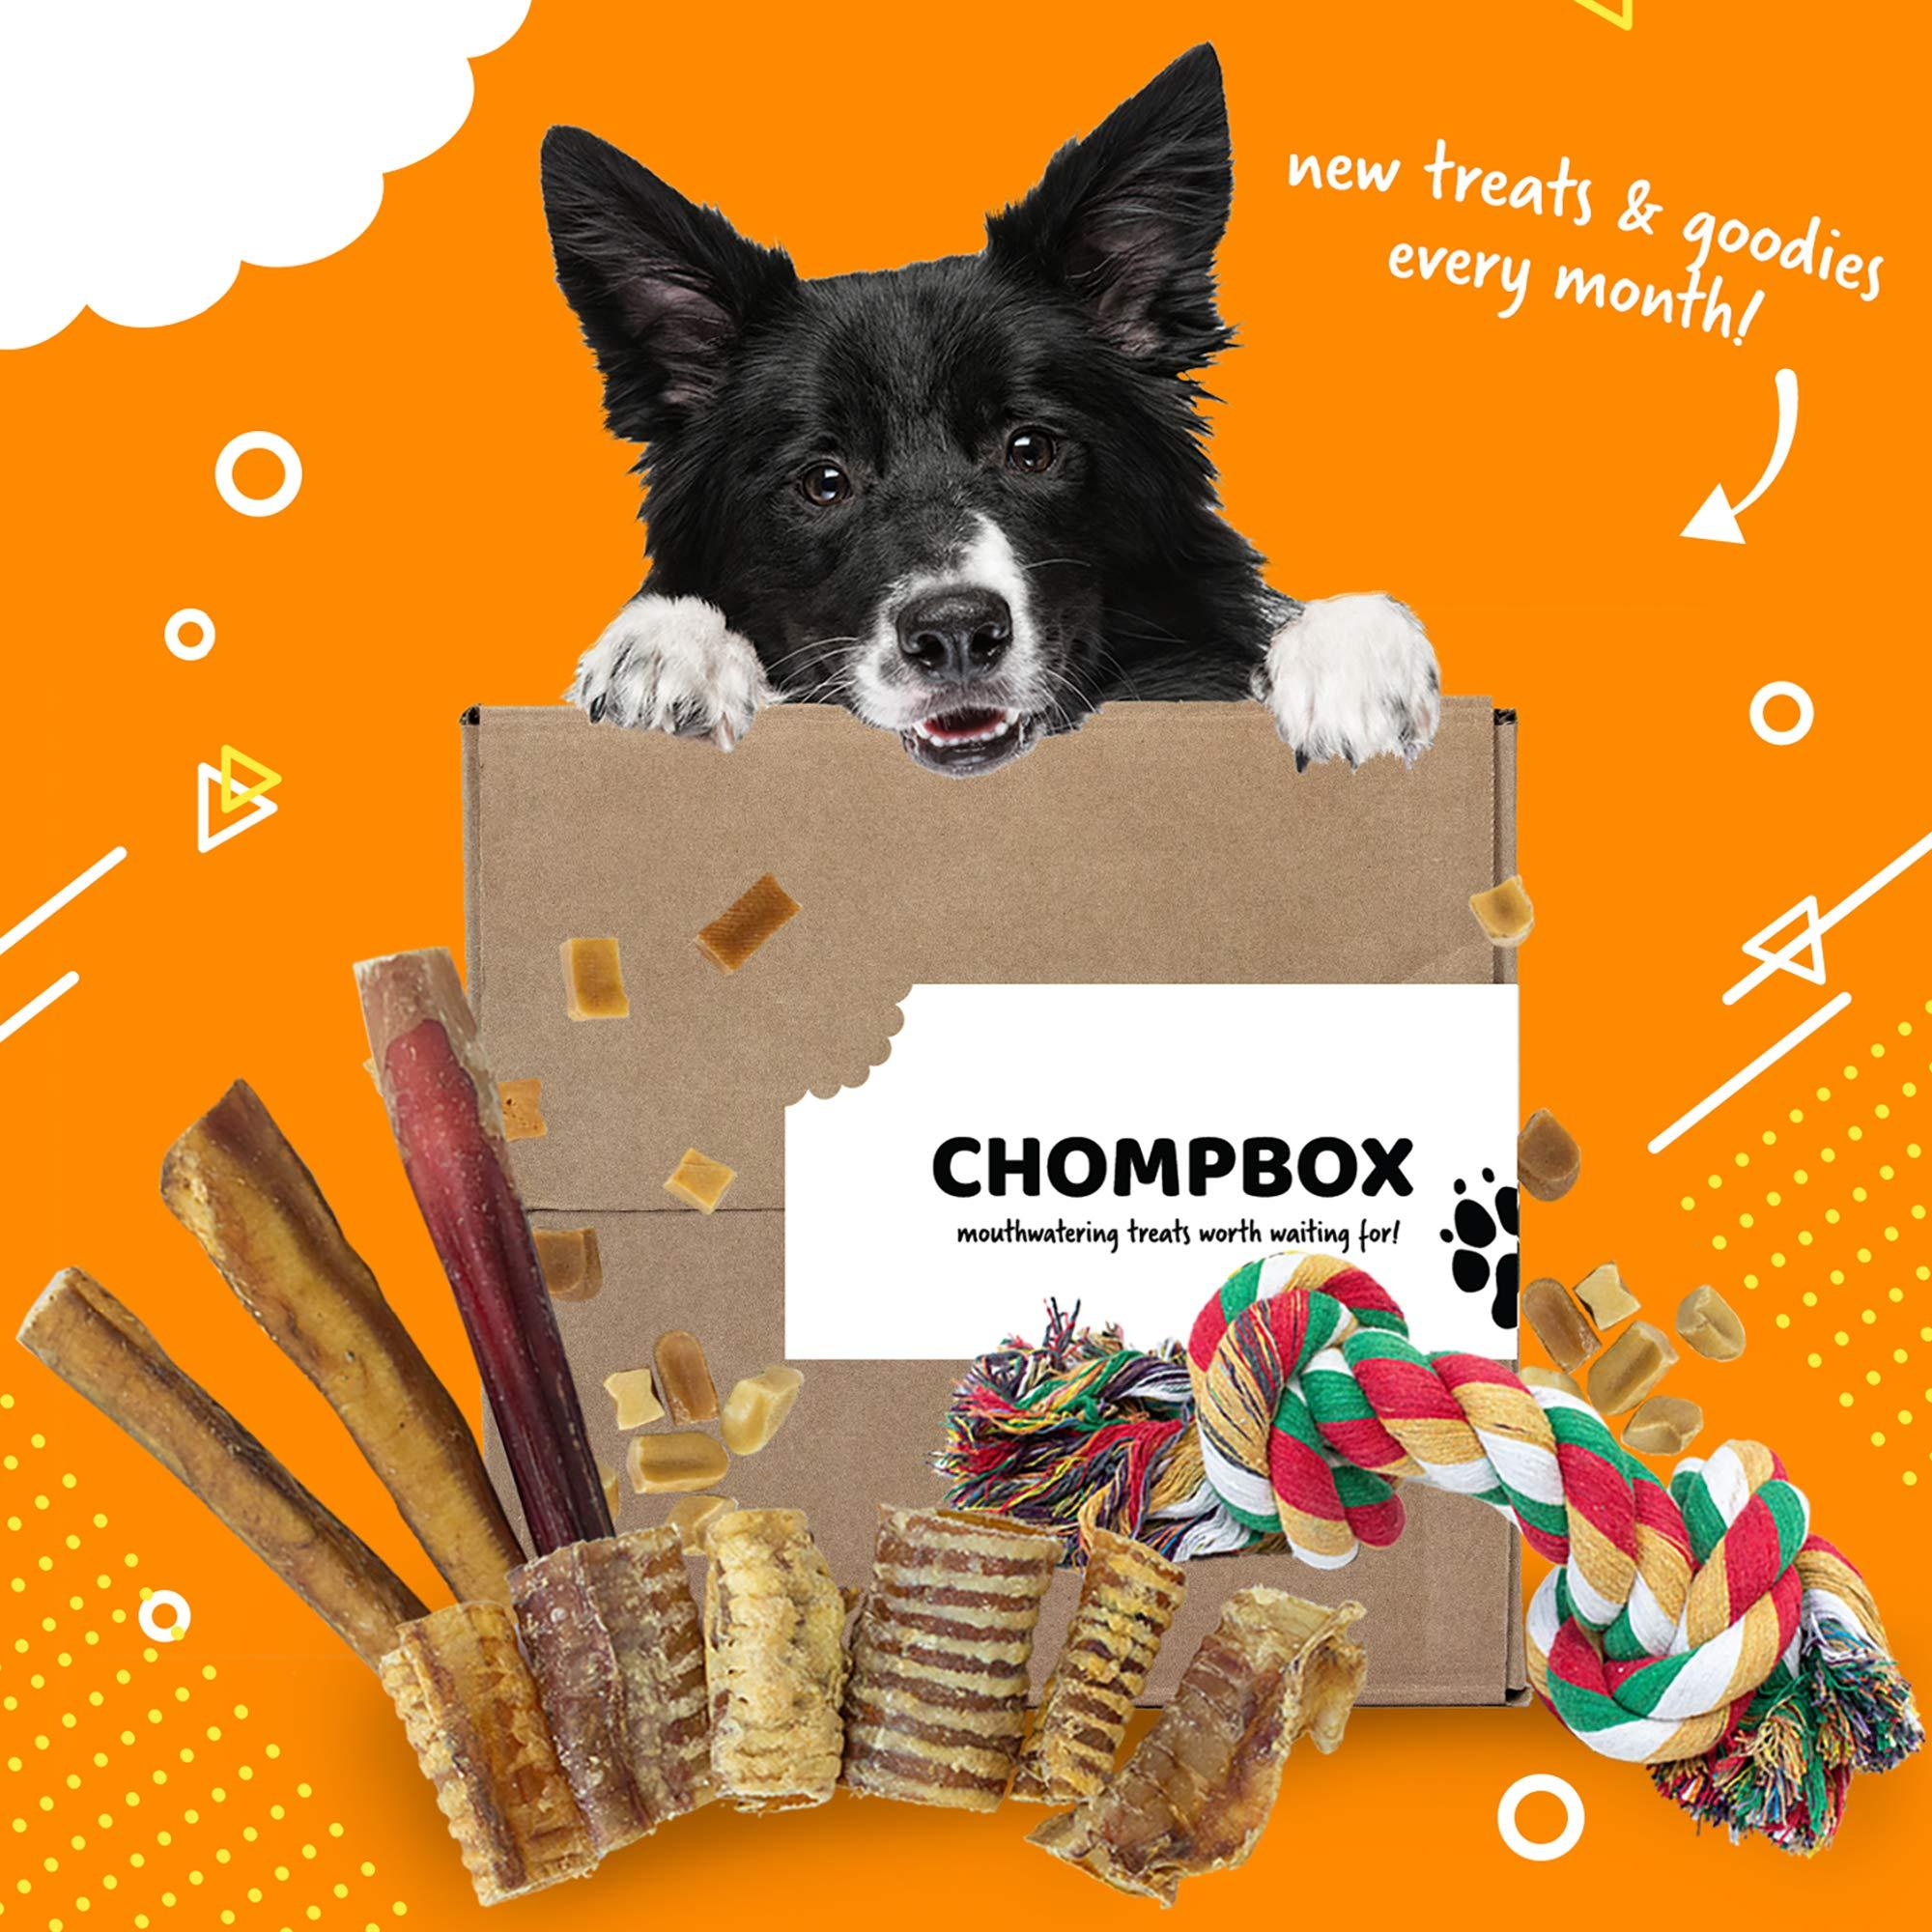 Chompbox - Monthly Dog Treats and Pet Supplies Subscription Box